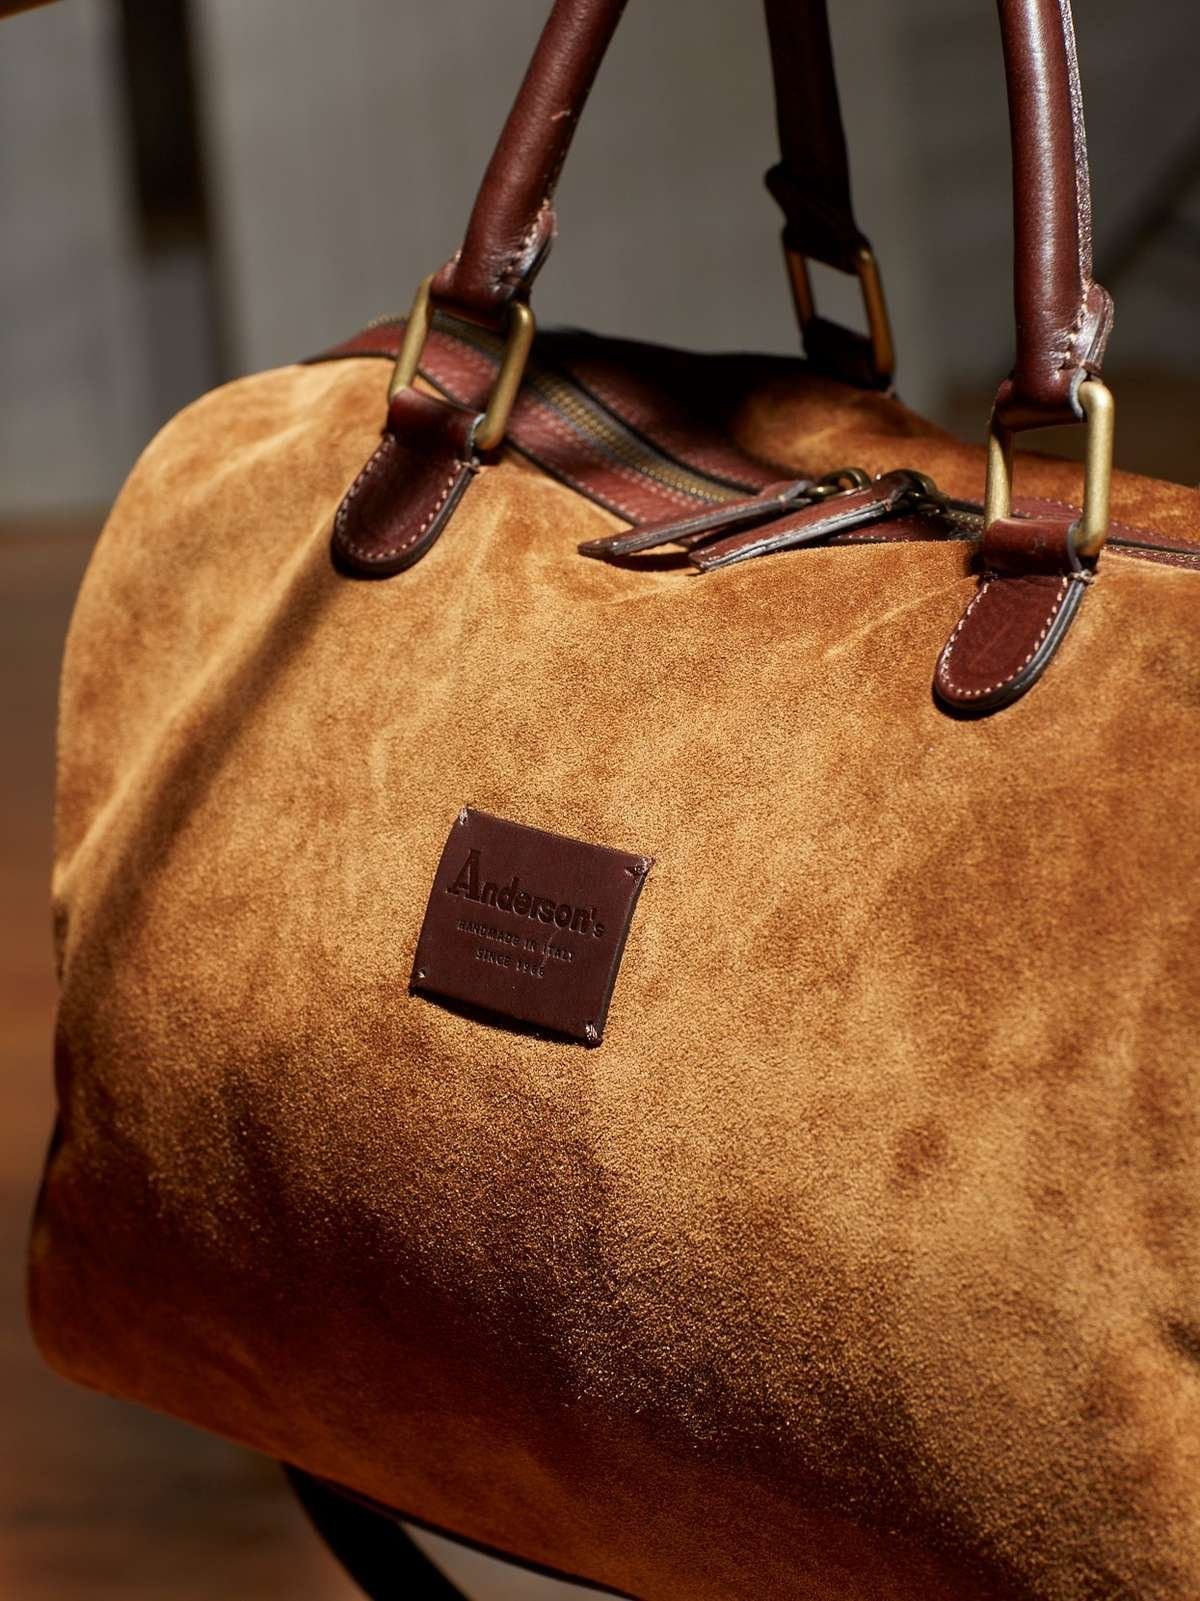 ANDERSON'S SUEDE OVERNIGHTER DUFFEL BAG